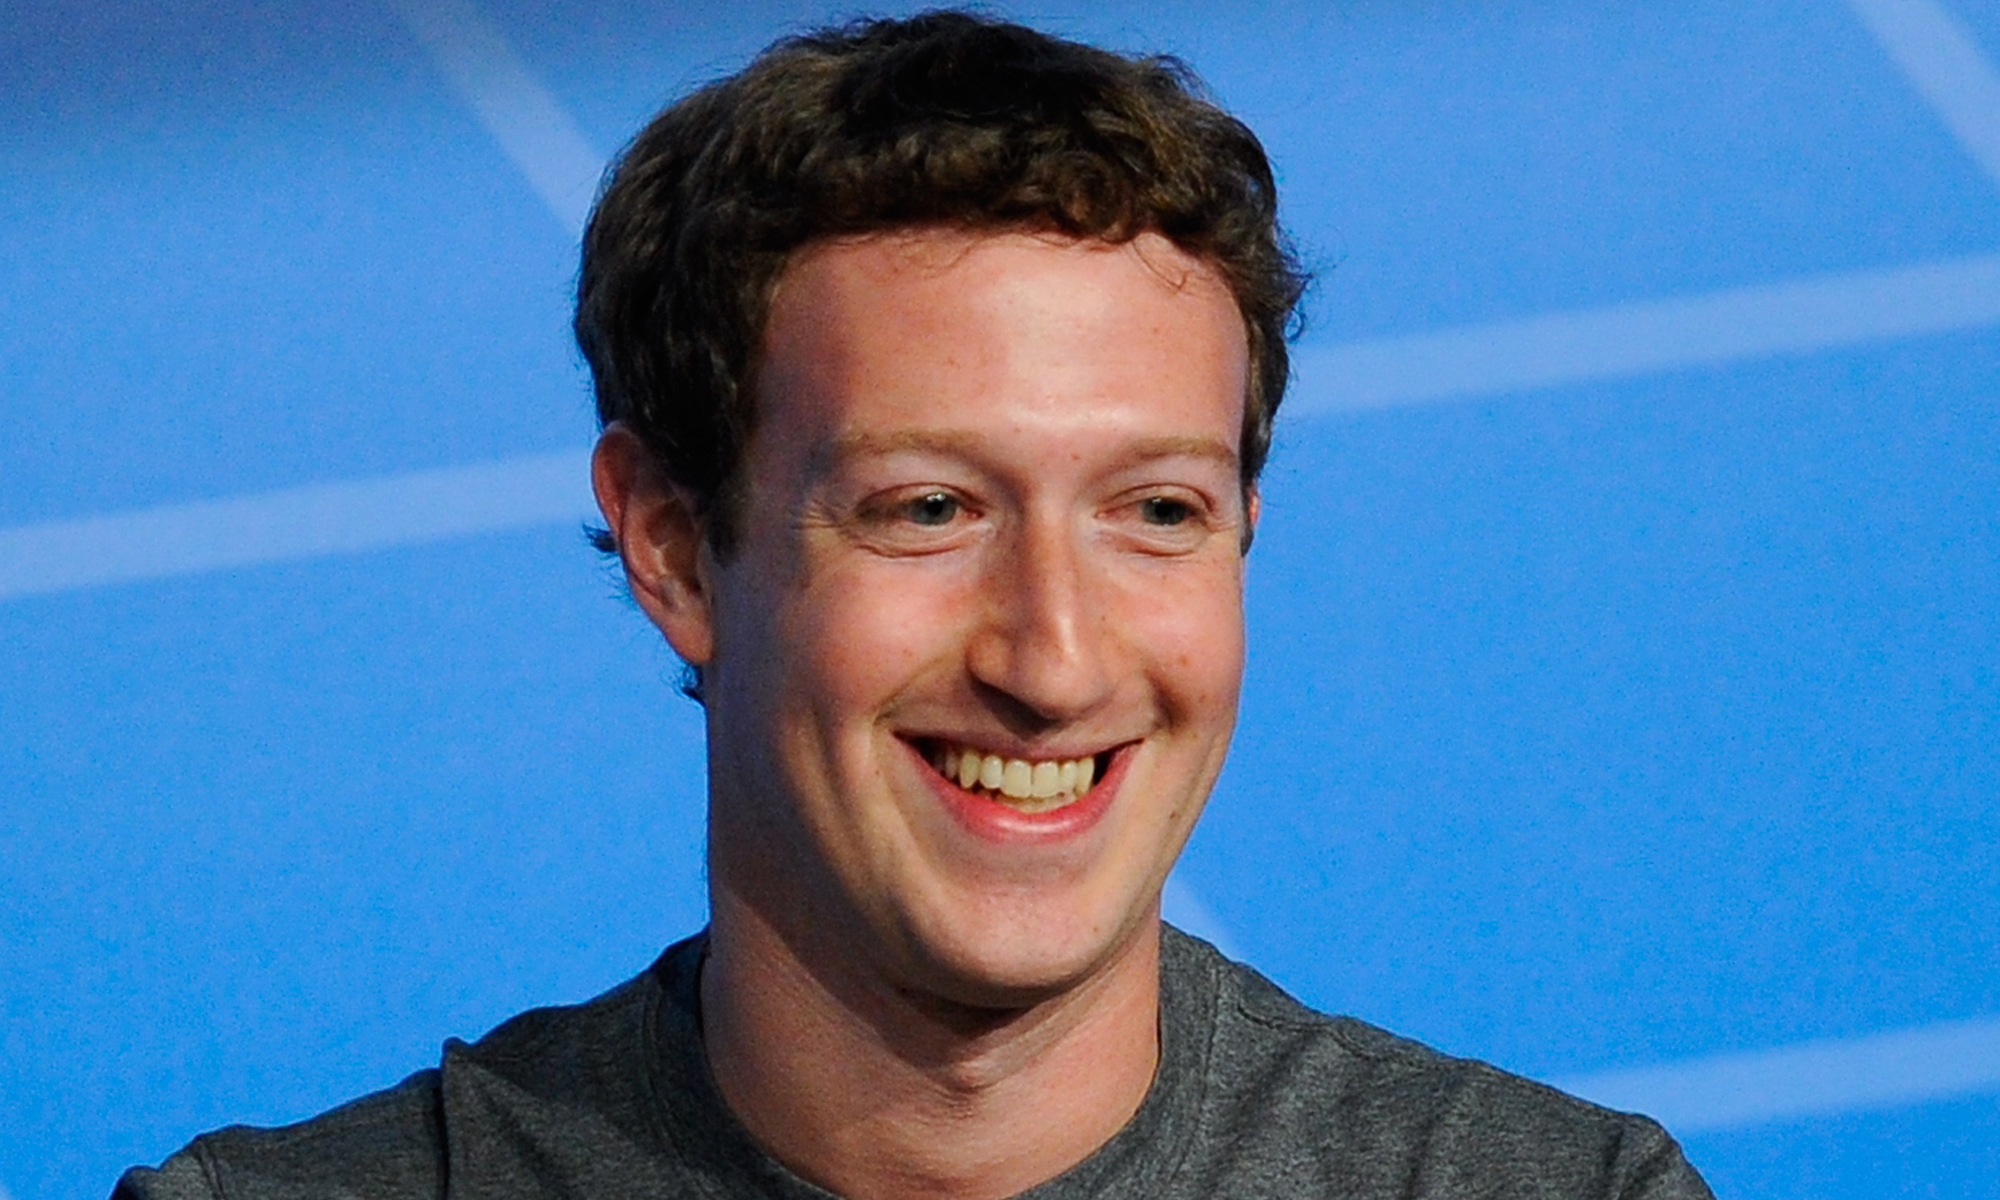 5 Myths About Mark Zuckerberg